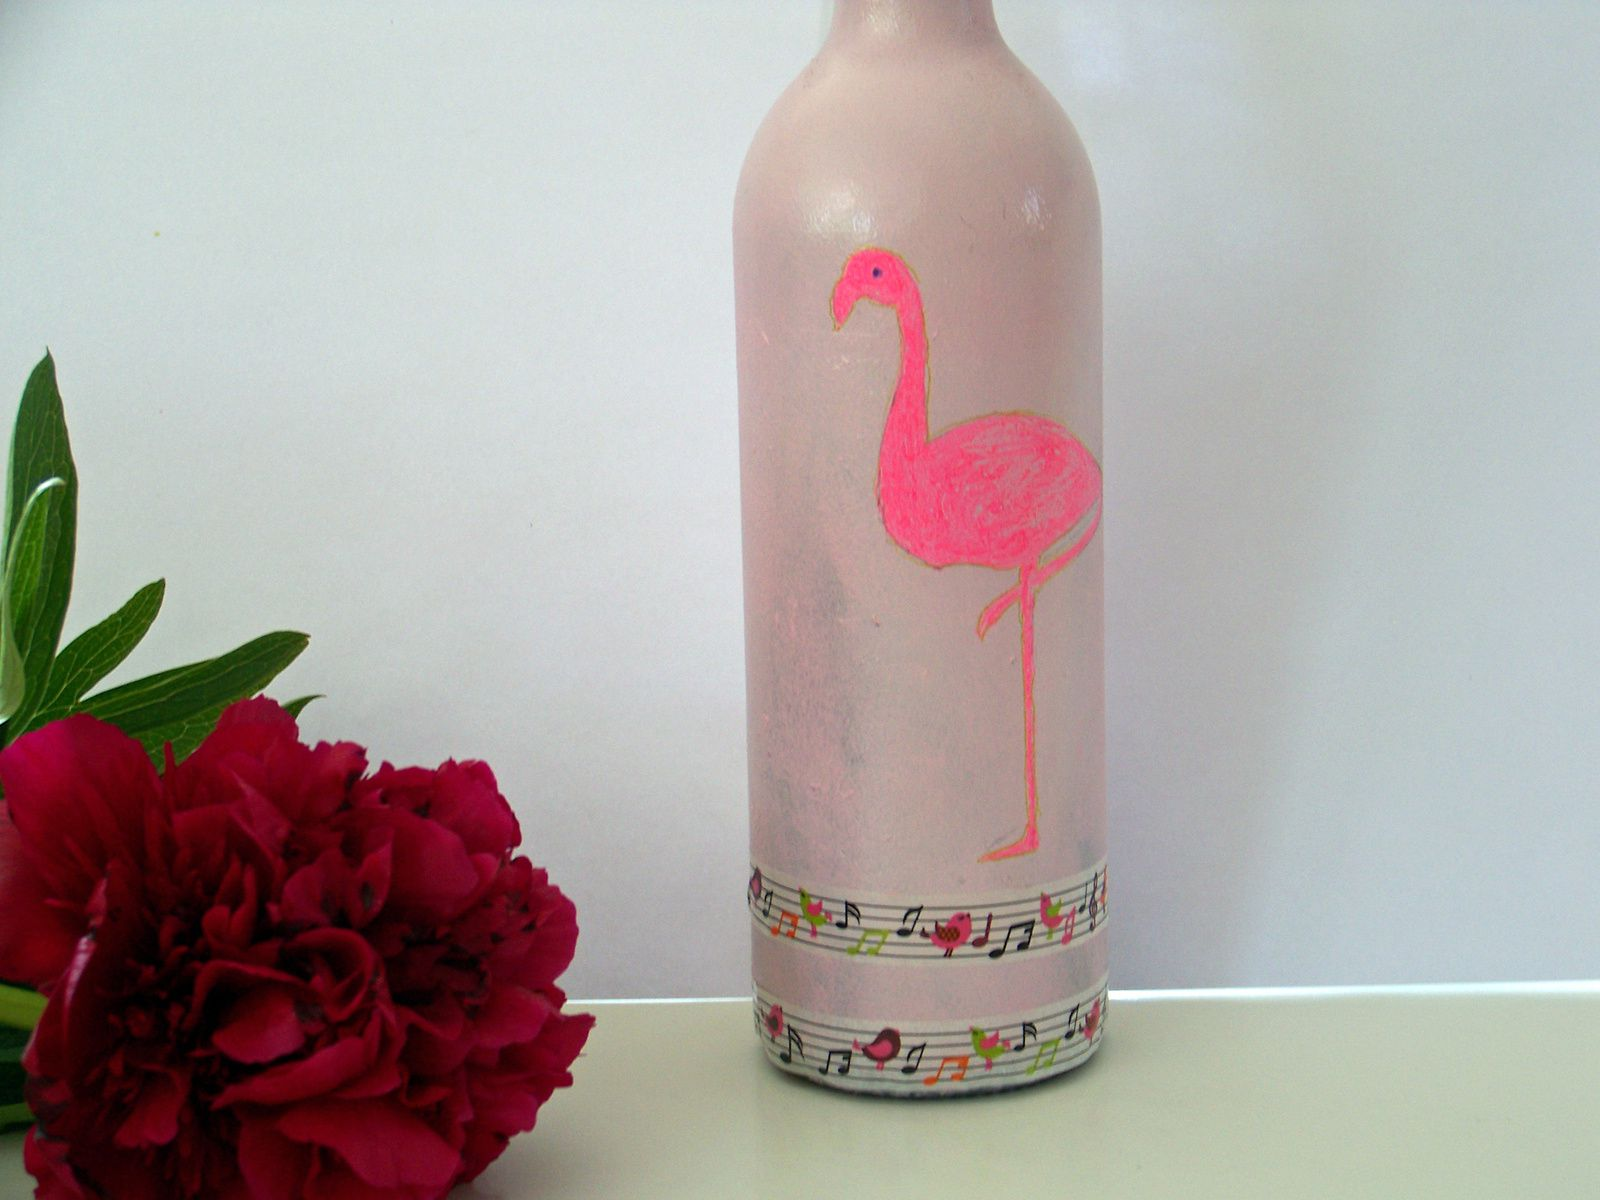 Flamand rose sur vase improvisé